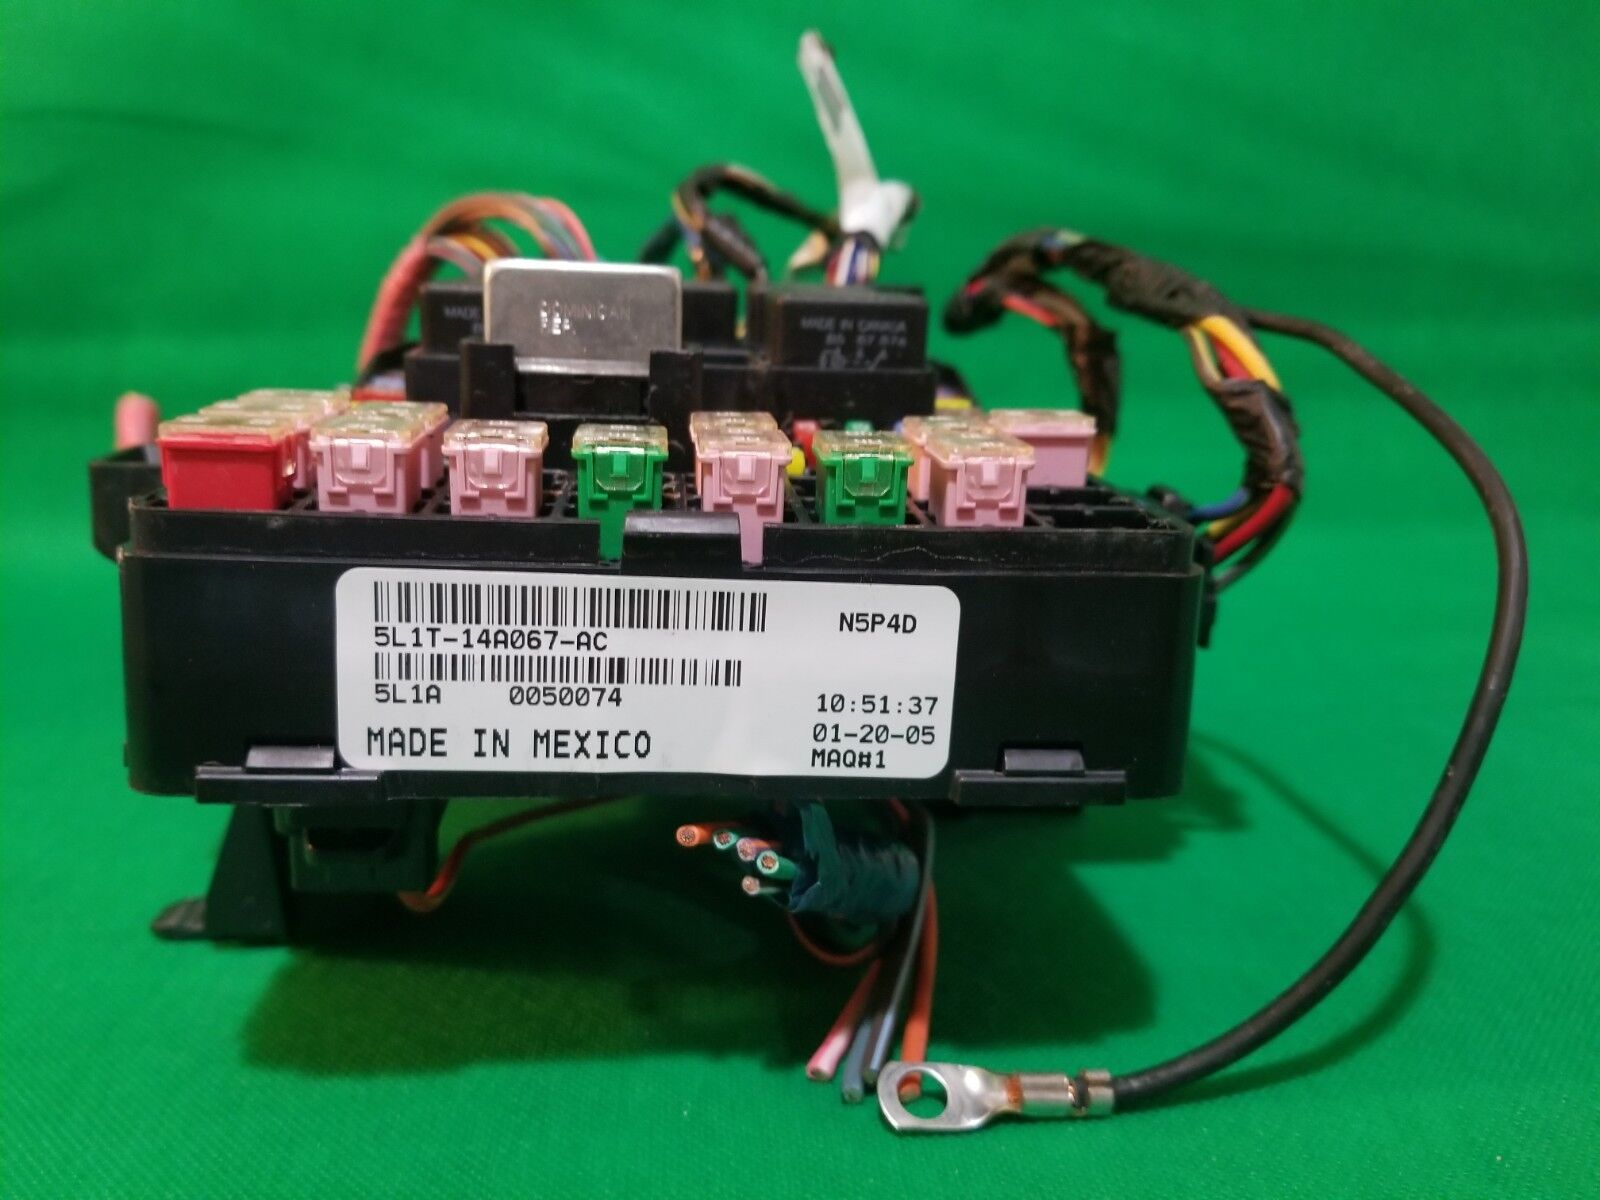 05 Expedition Navigator Fuse Junction Distribution Box Relay 5l1t-14a067-ac